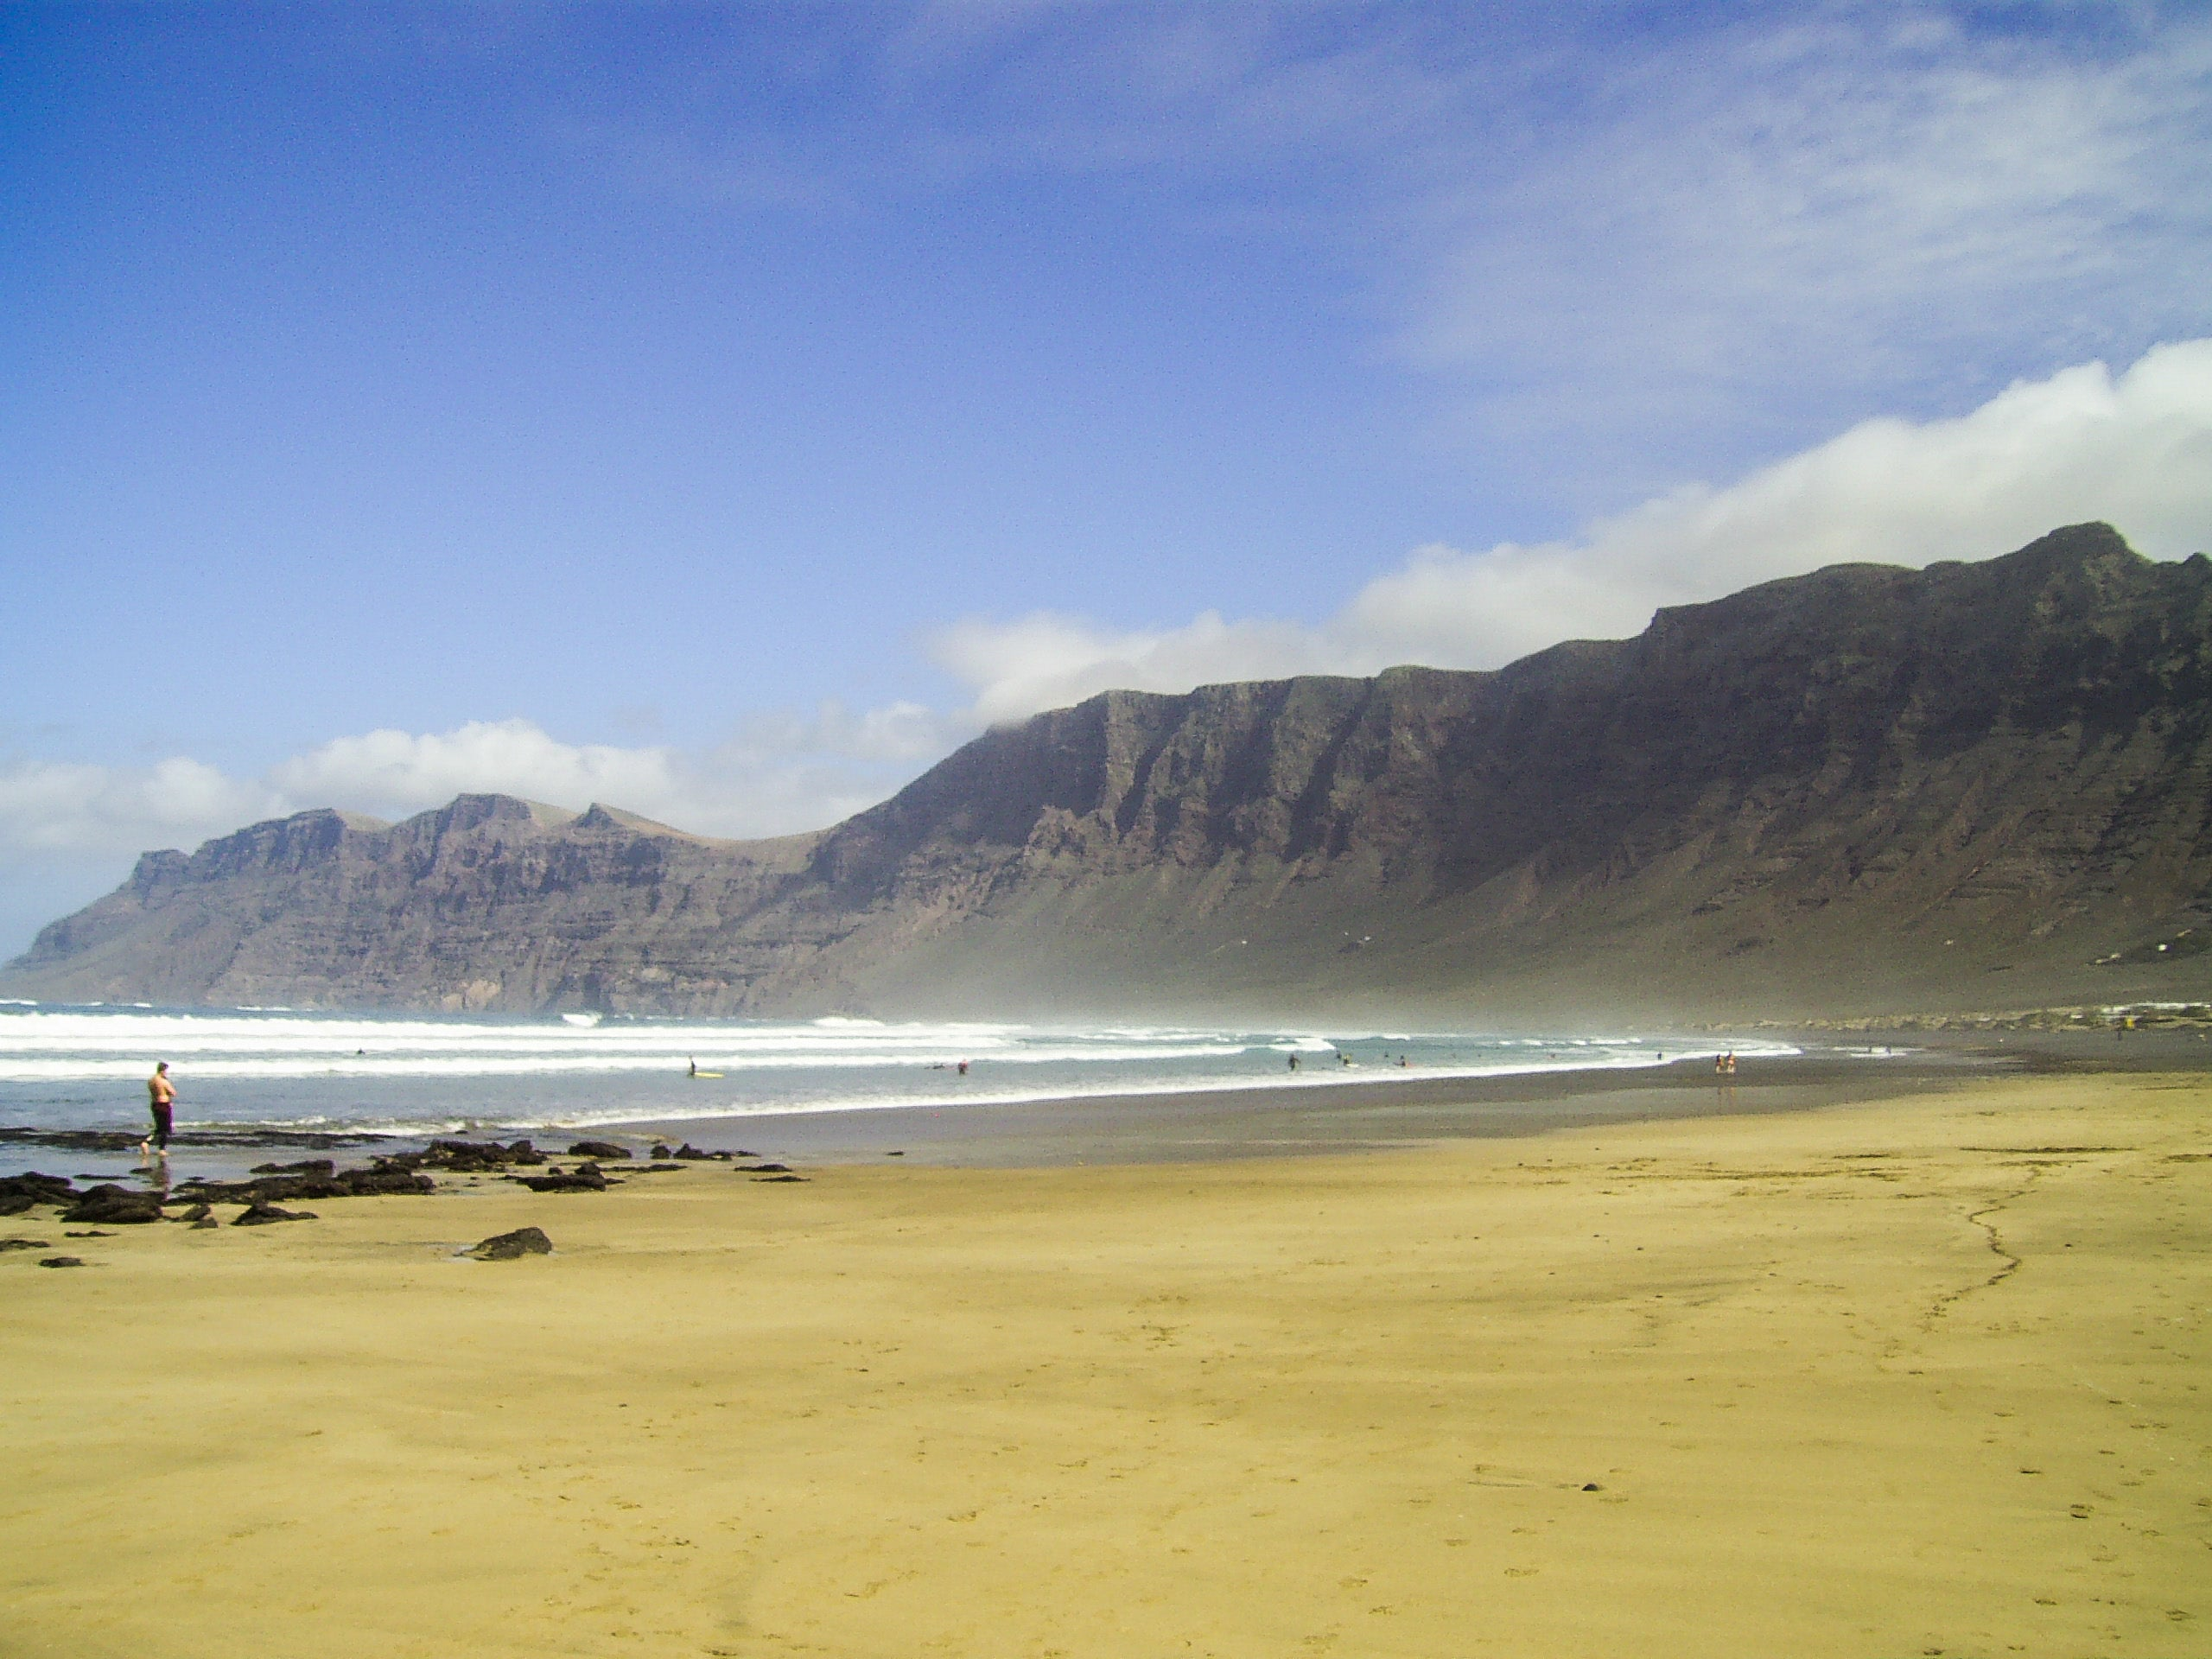 Mar en Playa de Famara